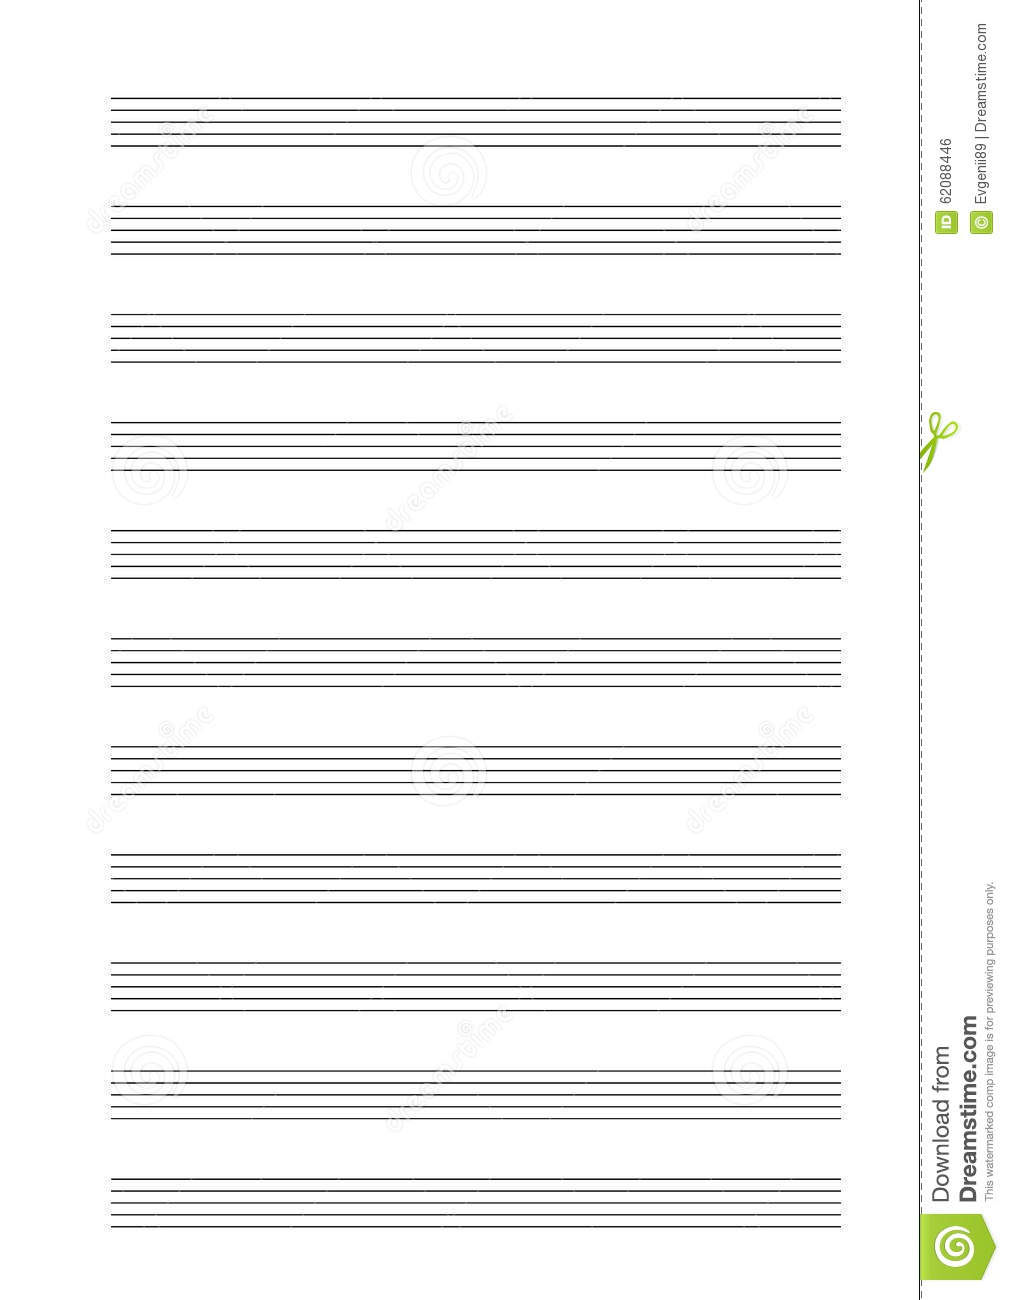 Blank sheet music screensaver 1.0